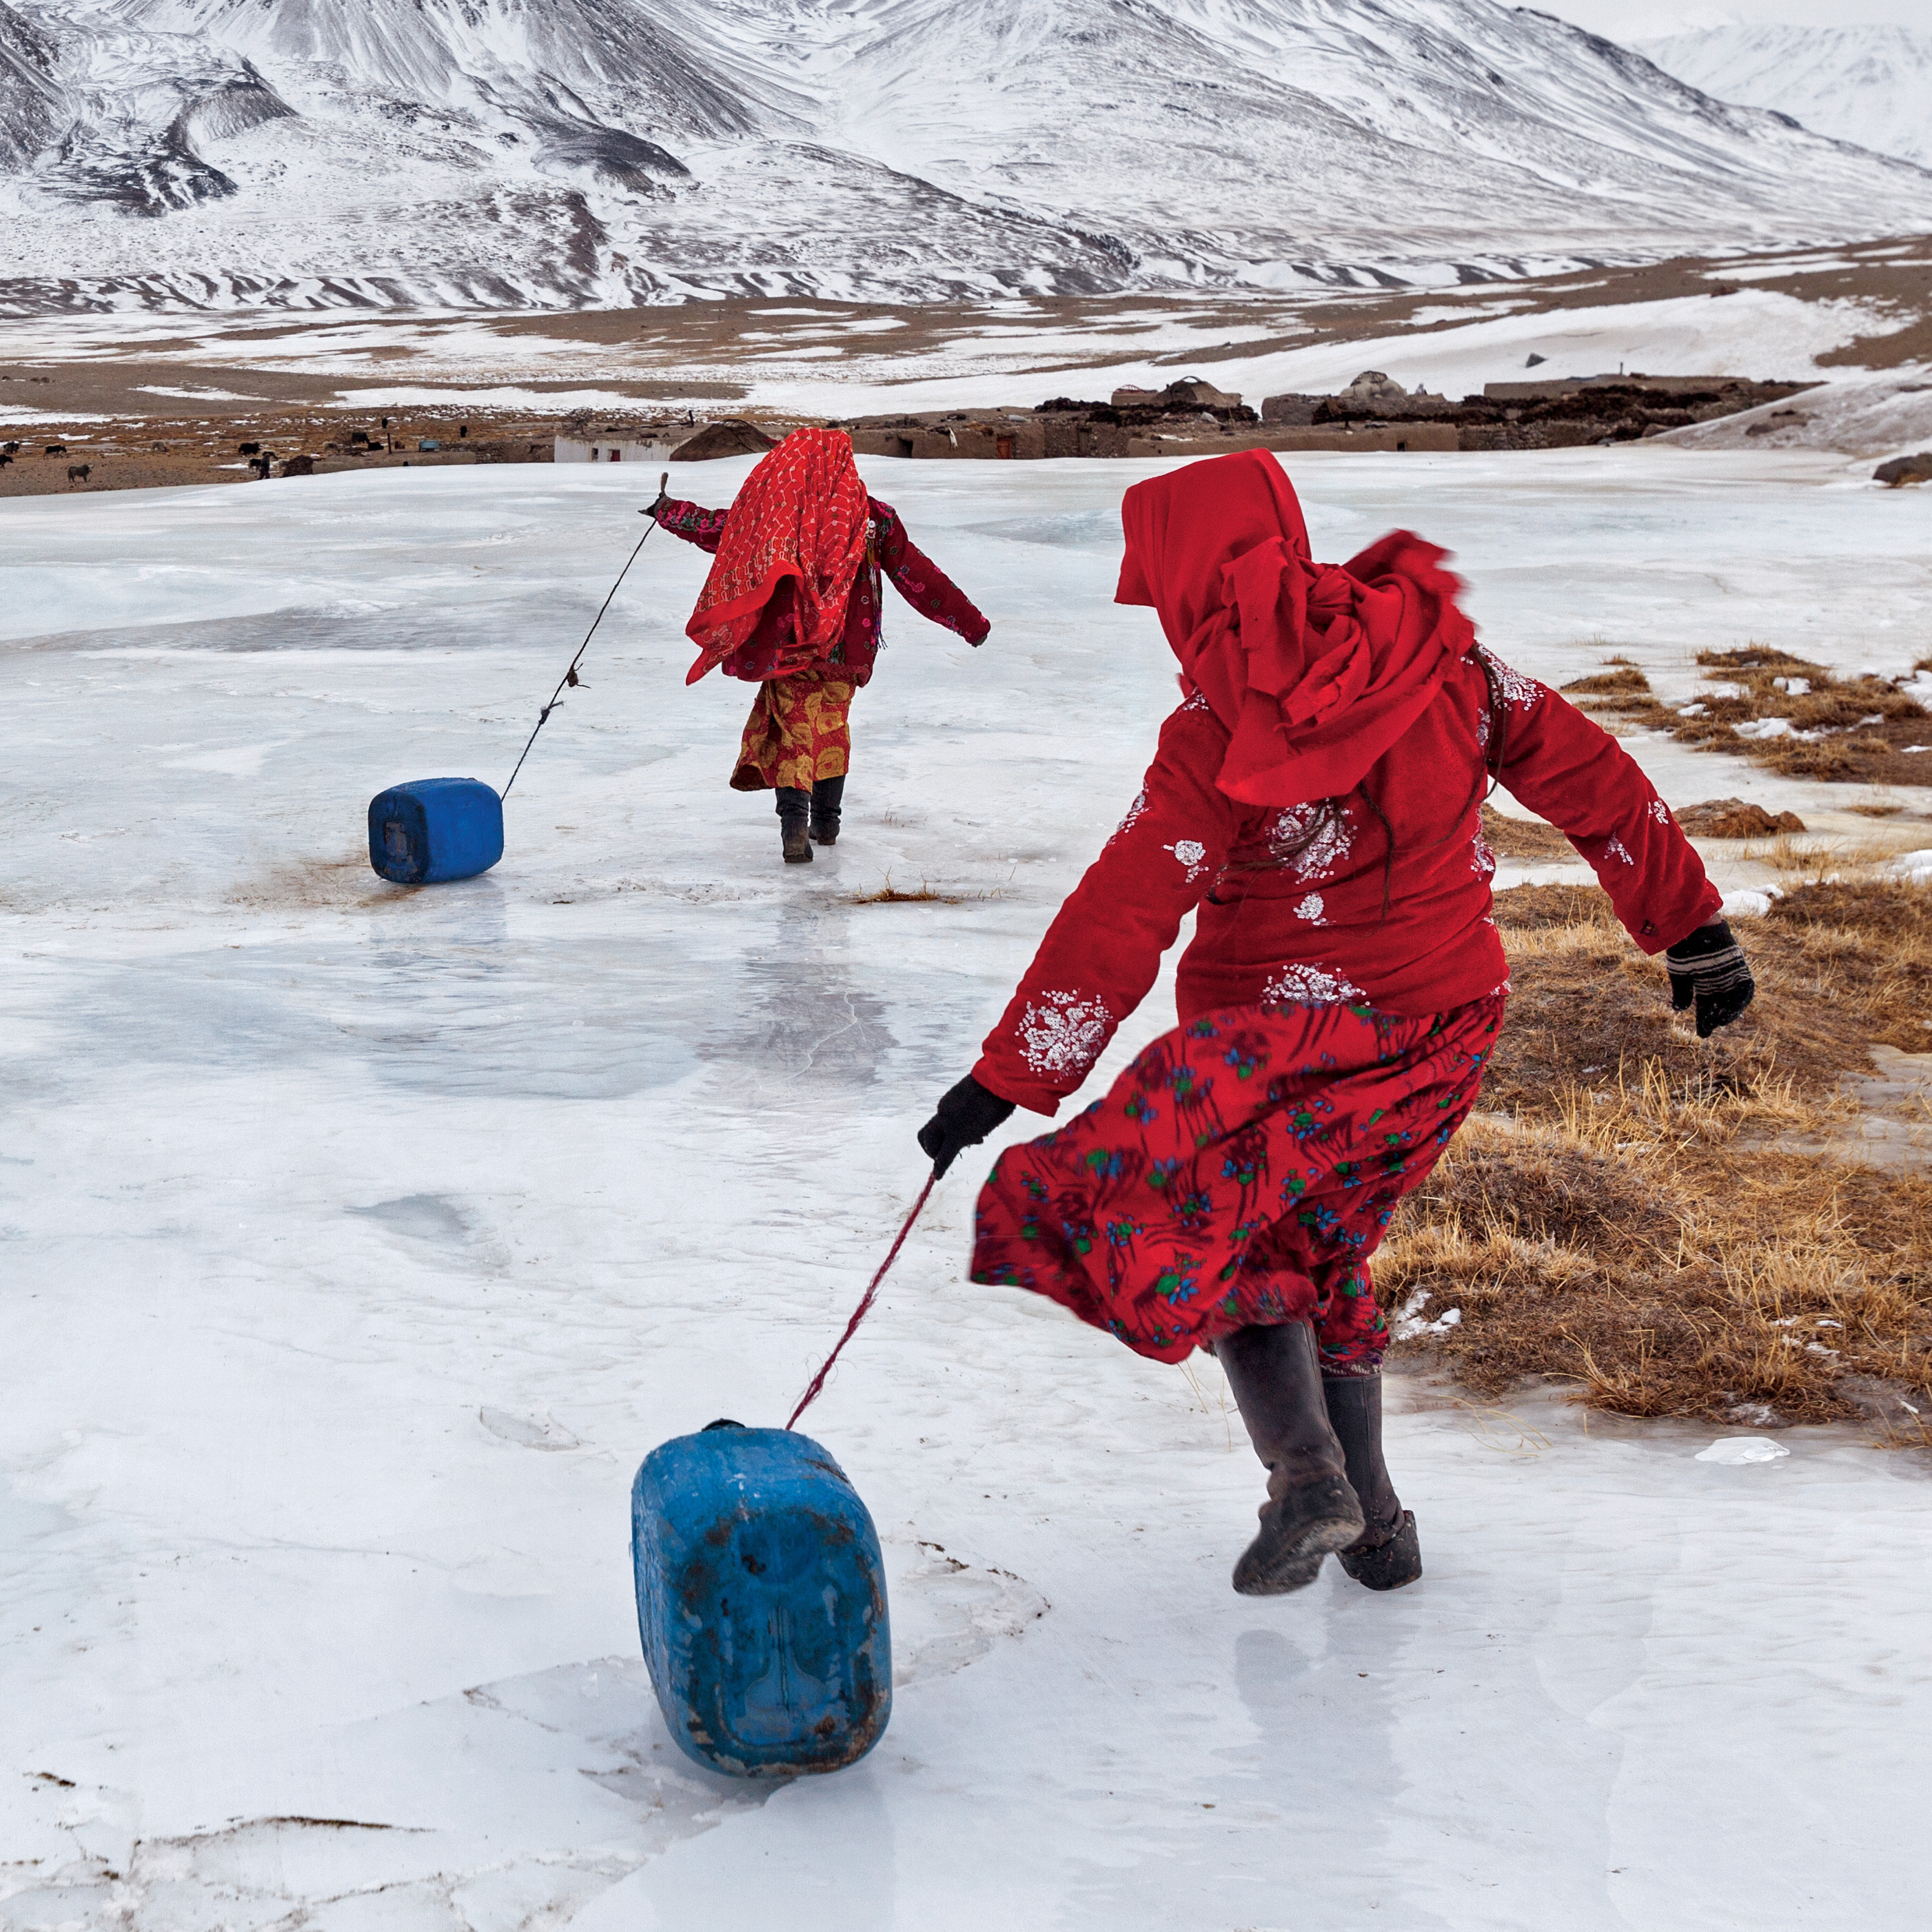 Kyrgyz girls slide plastic jugs back to their family's camp after chopping a hole in a frozen spring to fetch water. Men handle herding and trading; much of the hard labor of daily life falls to the females.